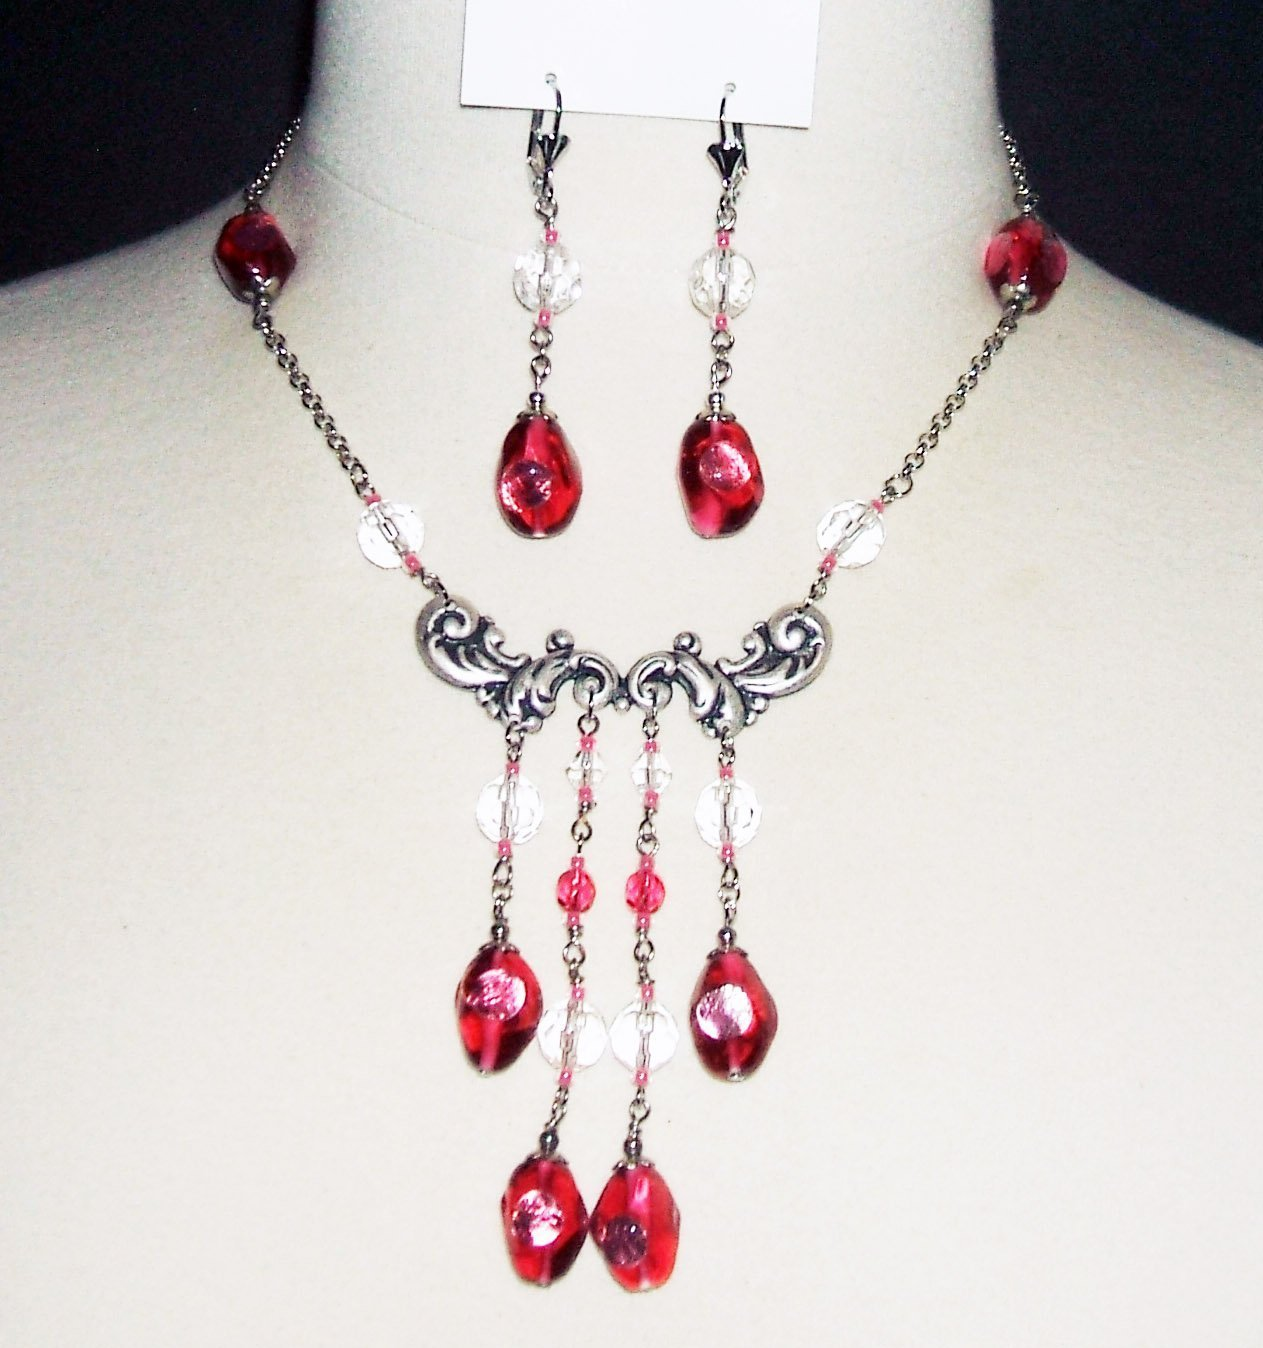 Red statement necklace Bright jewelry set Red roses necklace Festive red and white necklace Beads earring Gift for women Red wedding jewelry